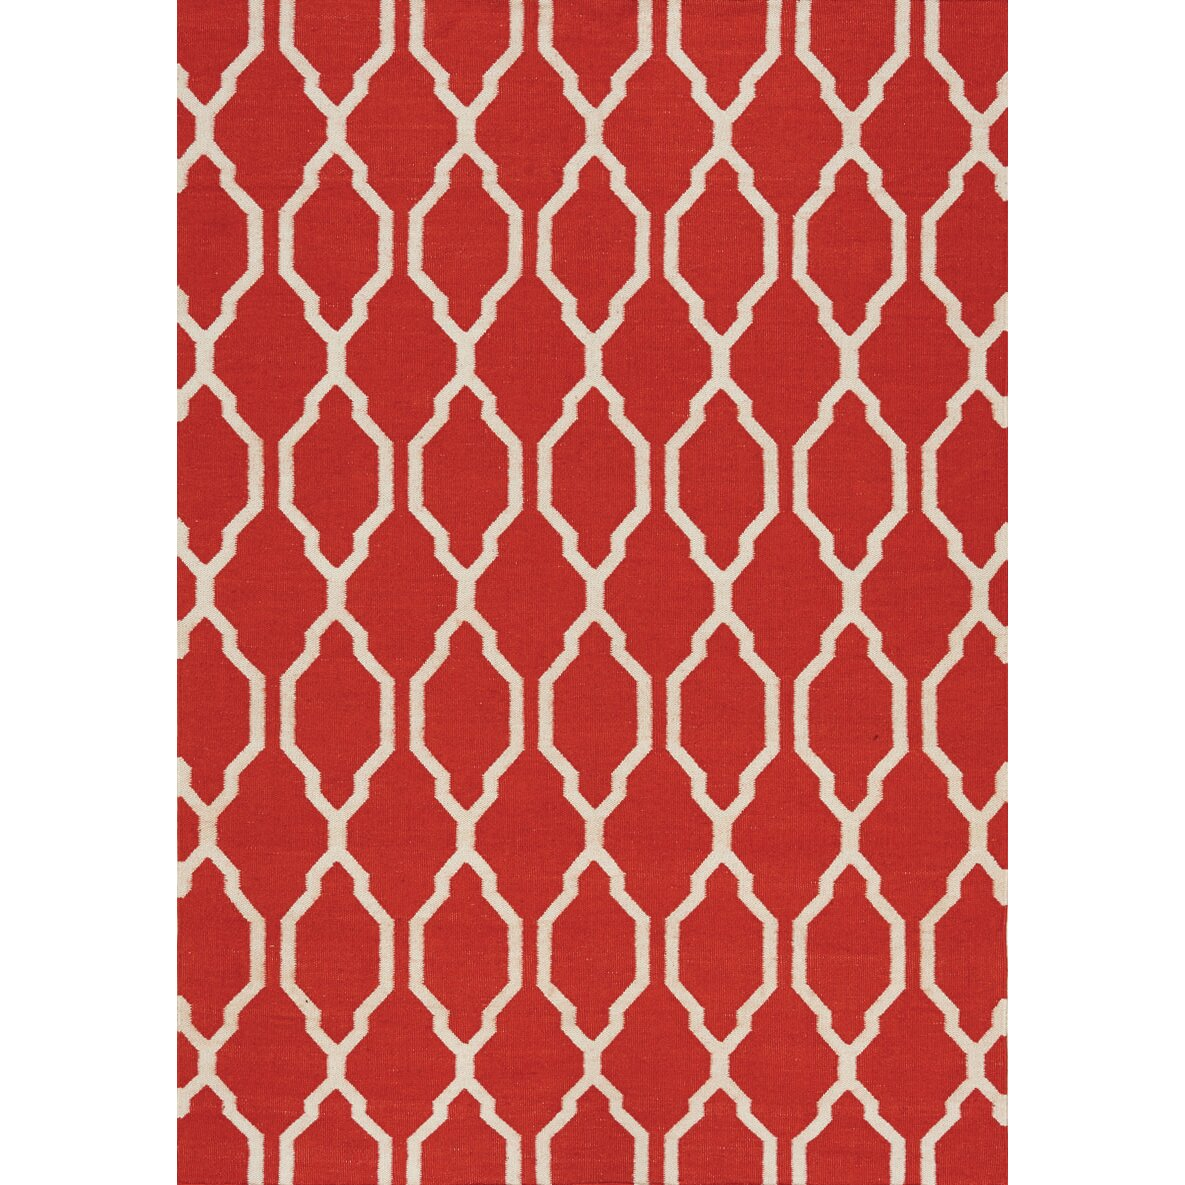 Kalora Shore Moroccan Flatweave Red Cream Indoor Outdoor